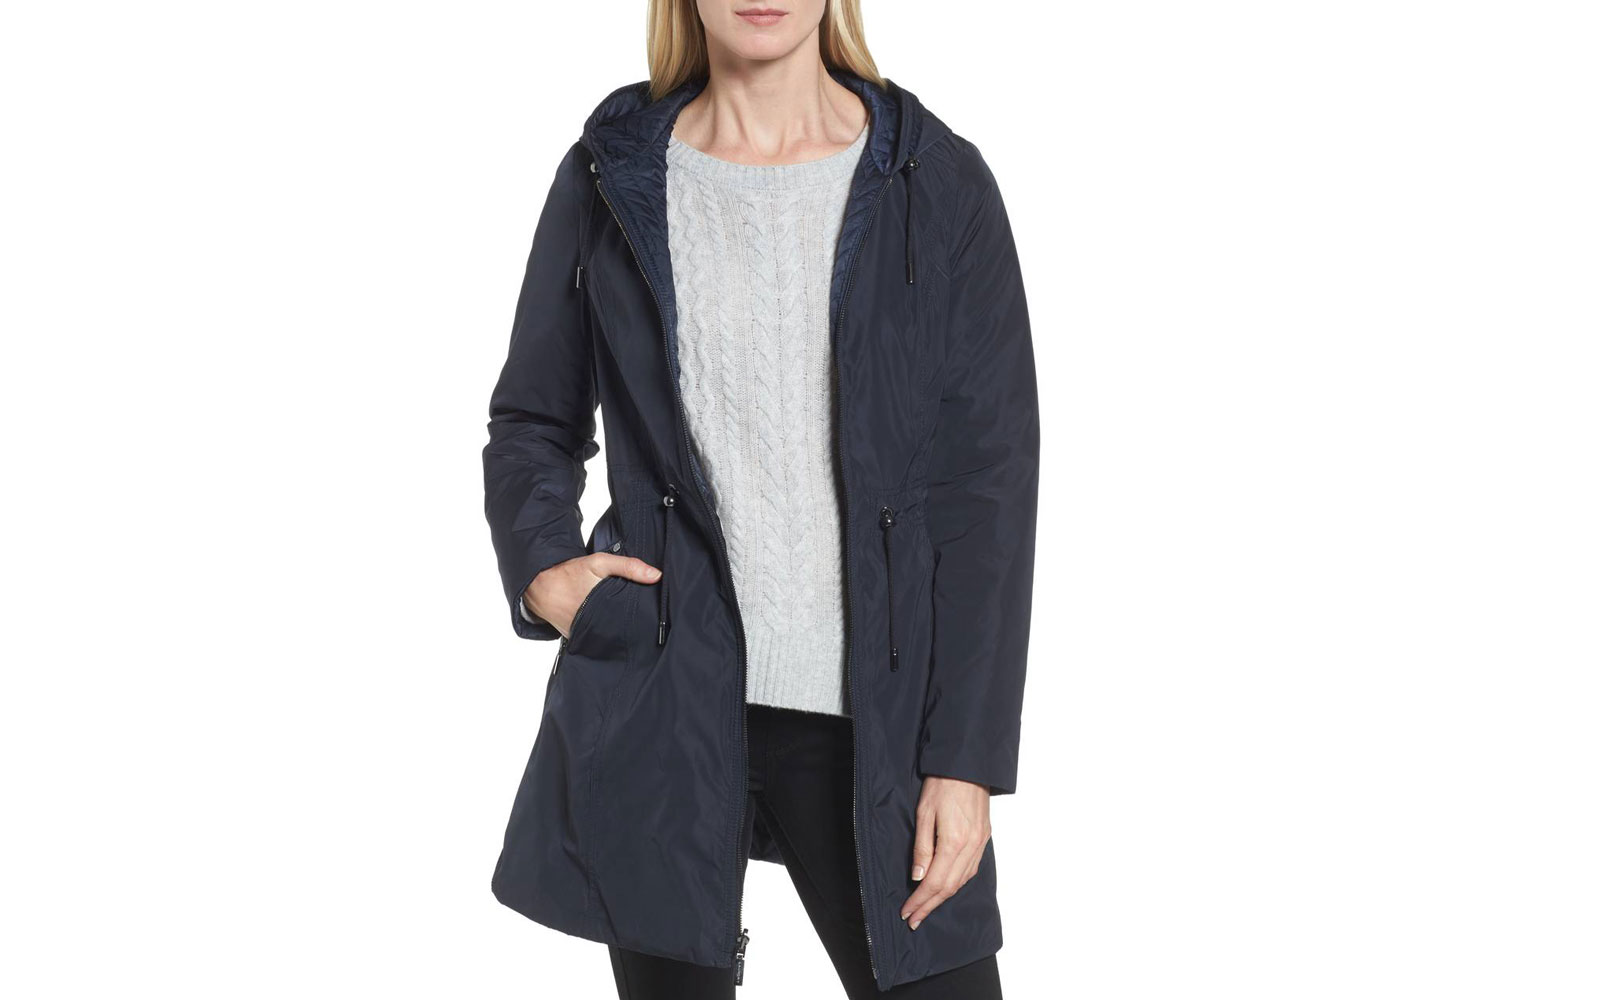 Laundry by Shelli Segal Women's Hooded Reversible Windbreaker Jacket